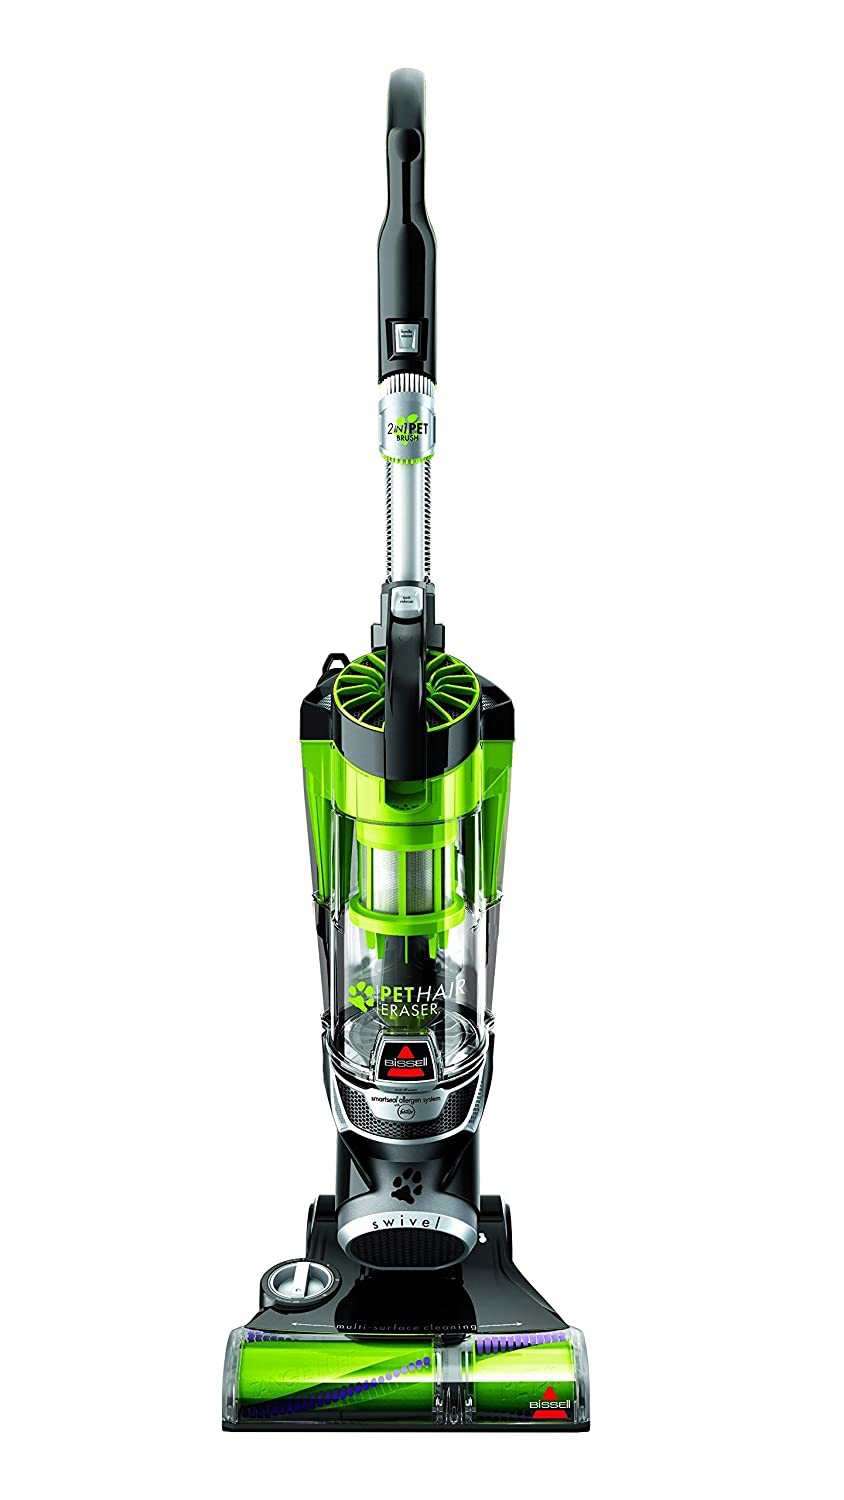 Bissell Pet Hair Eraser 1650A Upright Vacuum with Tangle Free Brushroll - May Come in Various Colors (Certified Refurbished)